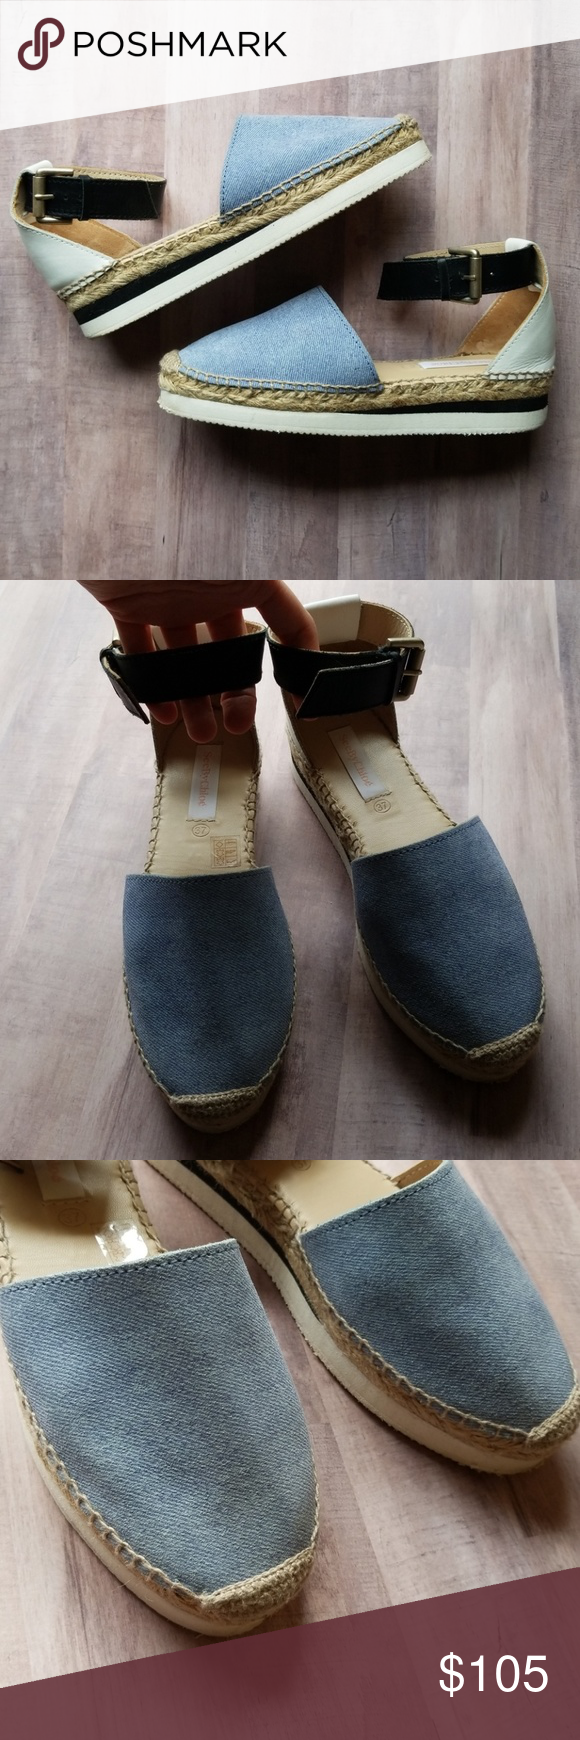 5b059ca64ea See By Chloe Leather & Denim Platform Espadrilles These are in very ...